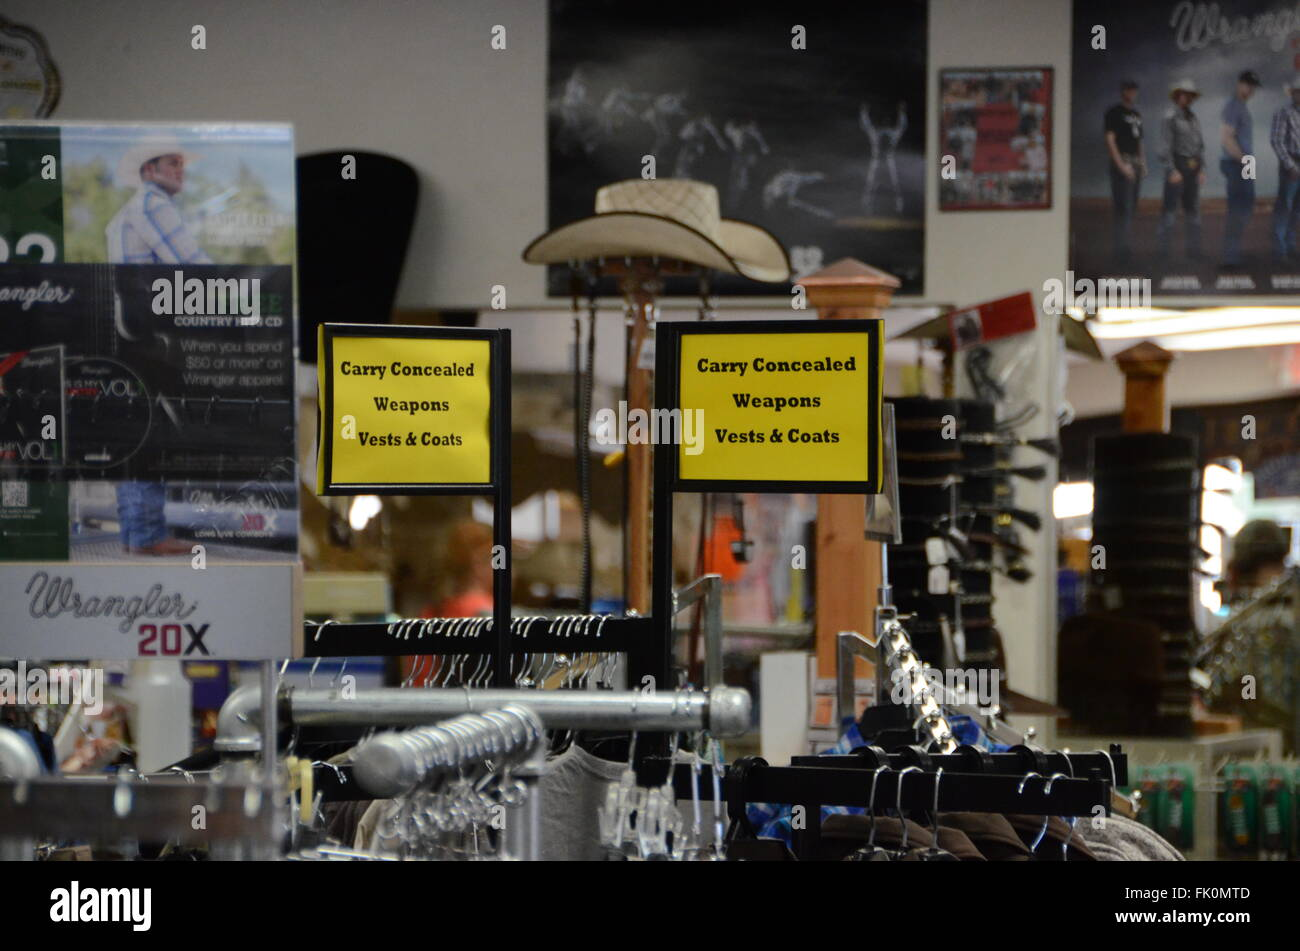 carry concealed weapons vests and coats sign cowboy shop arizona - Stock Image